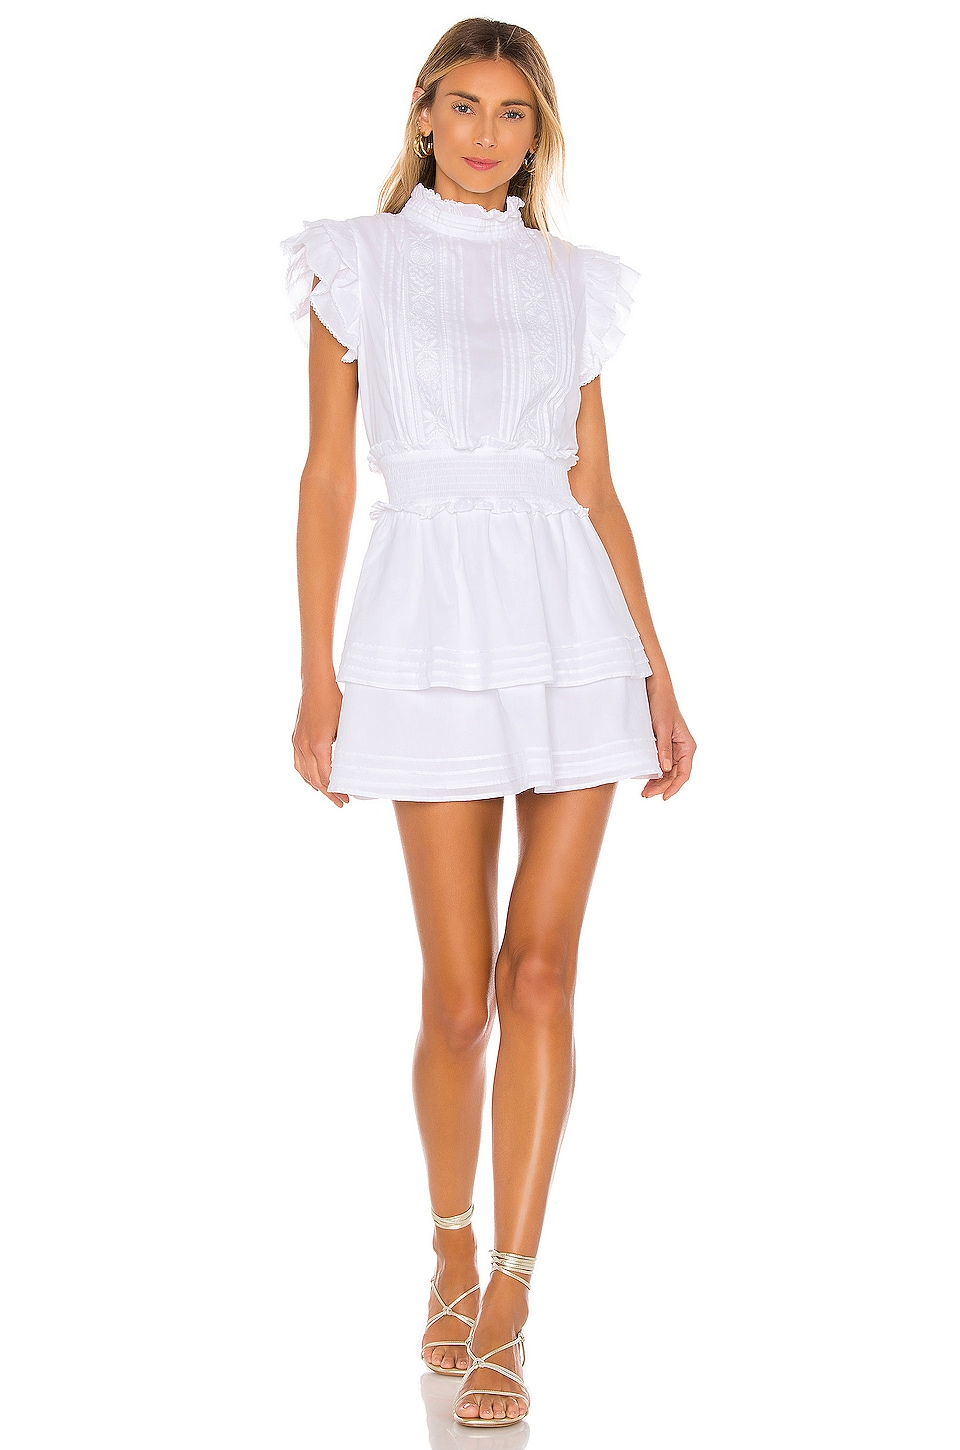 Versailles Mini Dress             Cleobella                                                                                                       CA$ 224.65 4